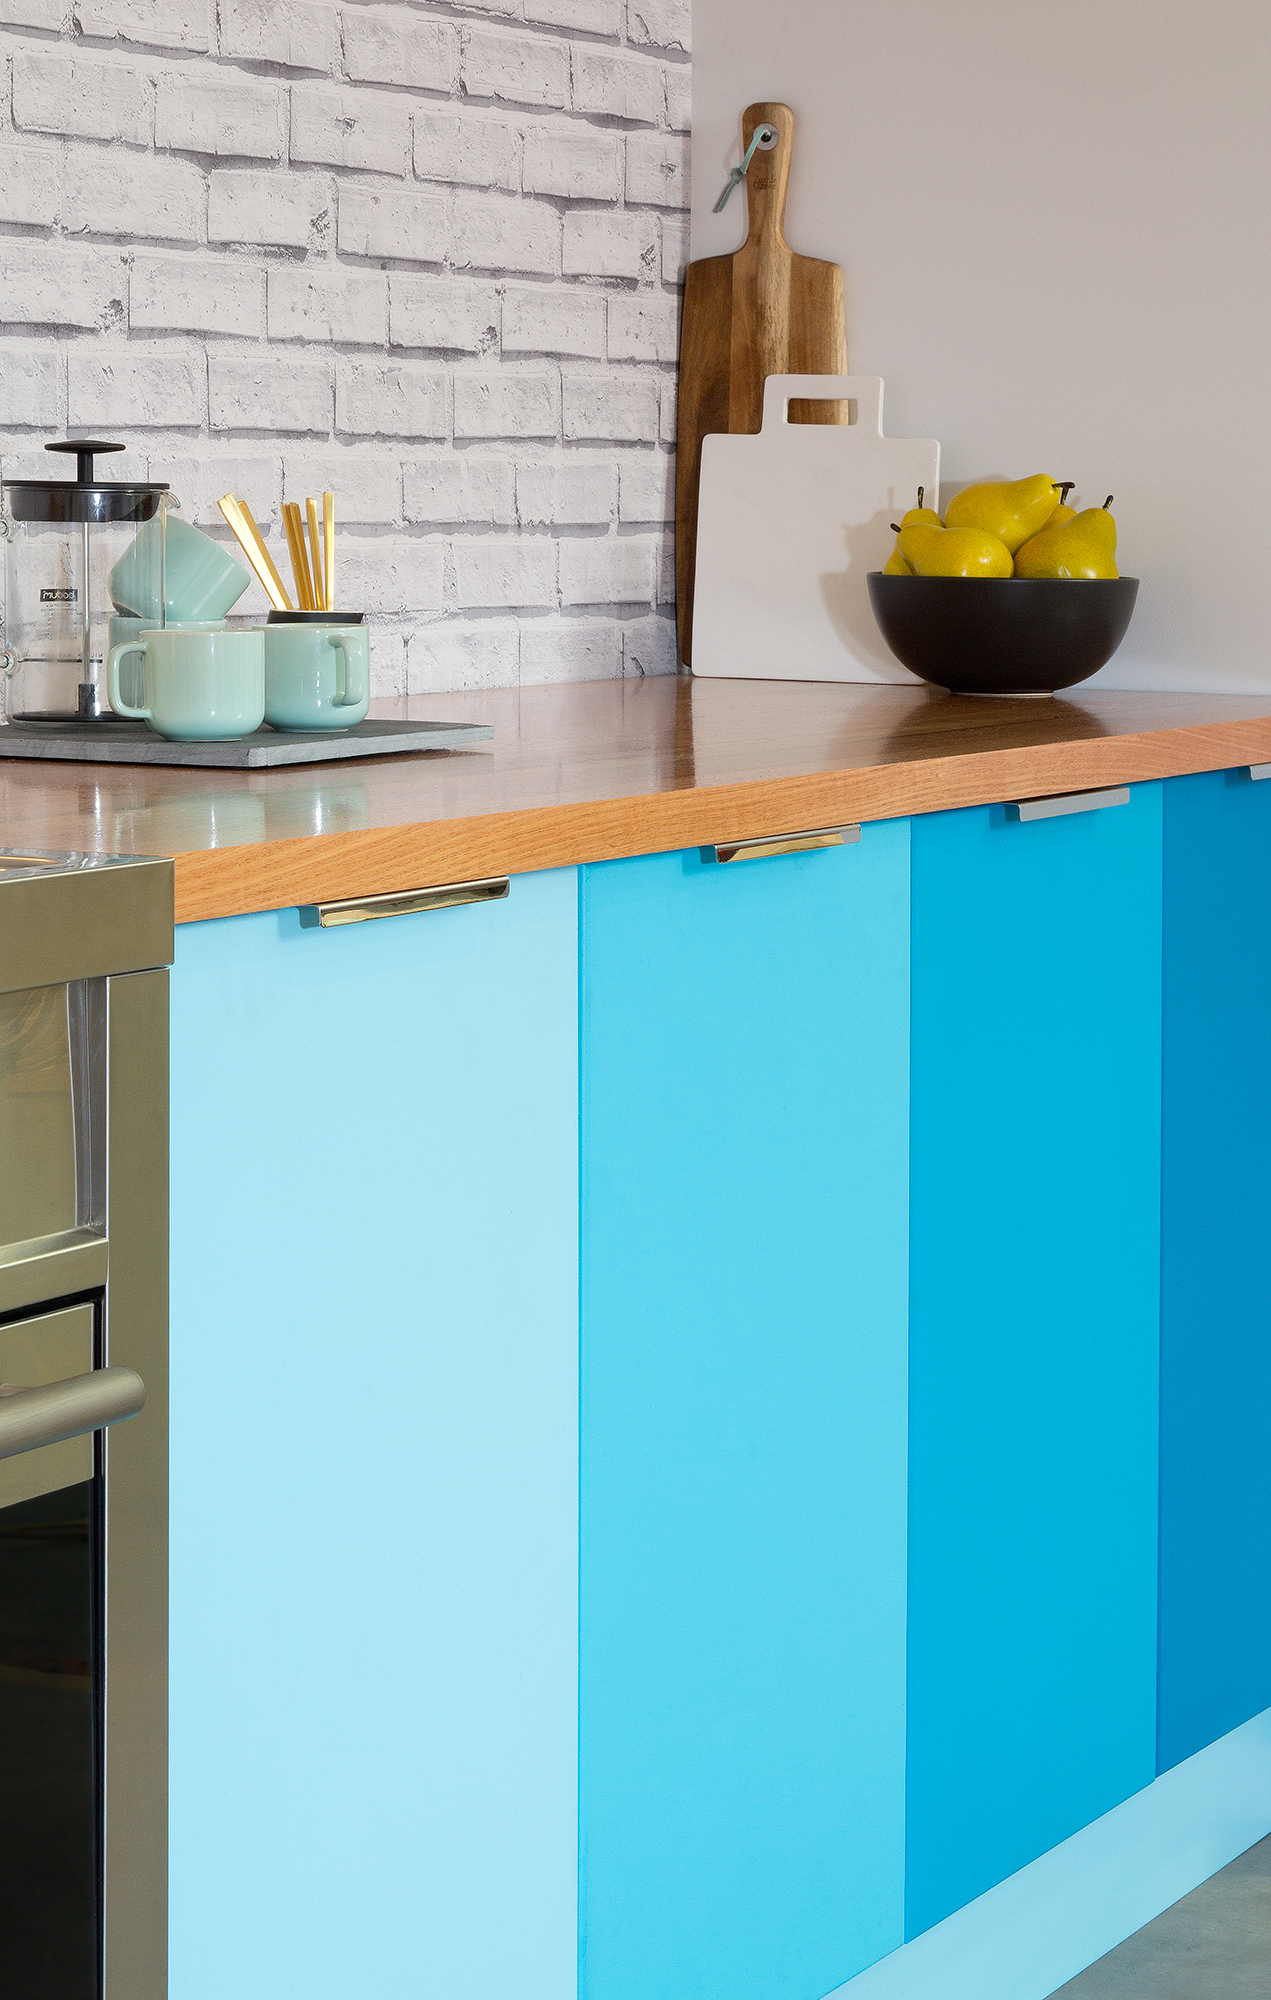 A sea of colour - kitchen inspiration and ideas | kaboodle kitchen